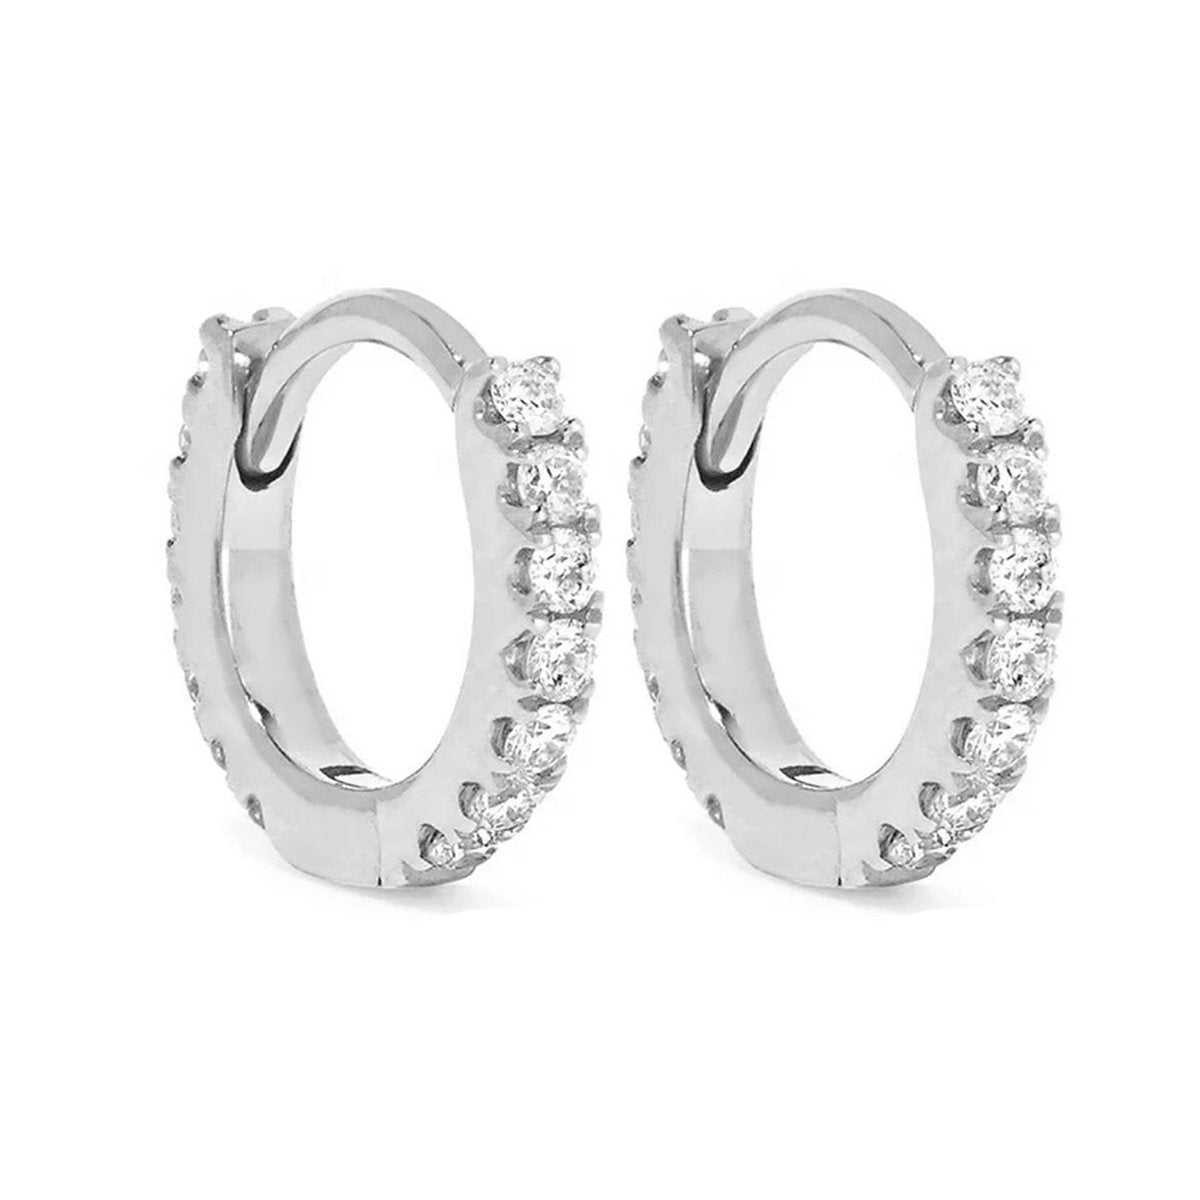 Huggie Earrings/18K White Gold & Premium Cubic Zirconia - infinityXinfinity.co.uk